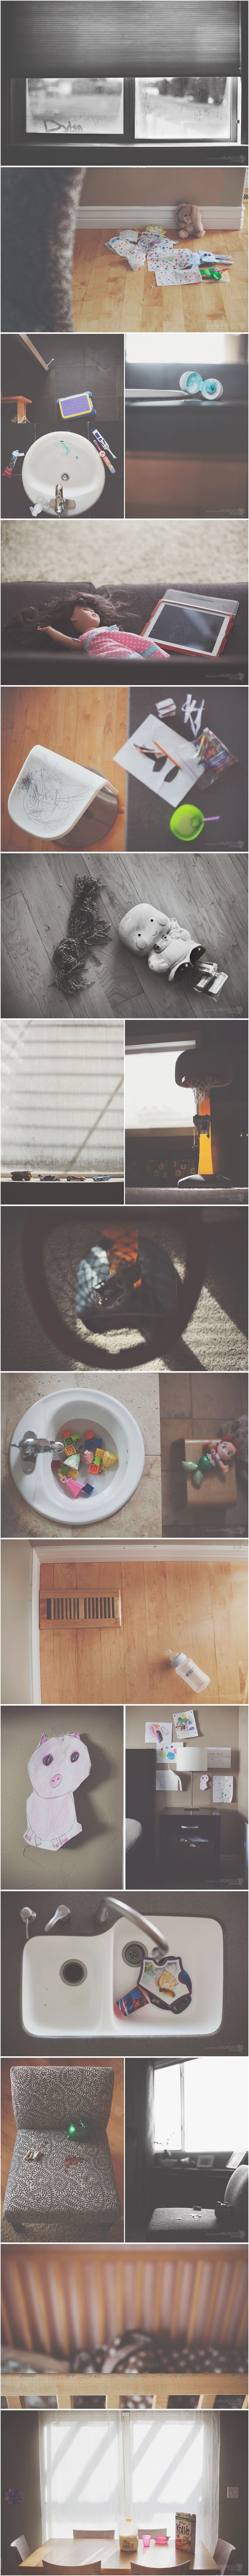 """""""kids were here"""" april edition » Summer Murdock Photography Documenting the evidence that the """"kids were here"""""""